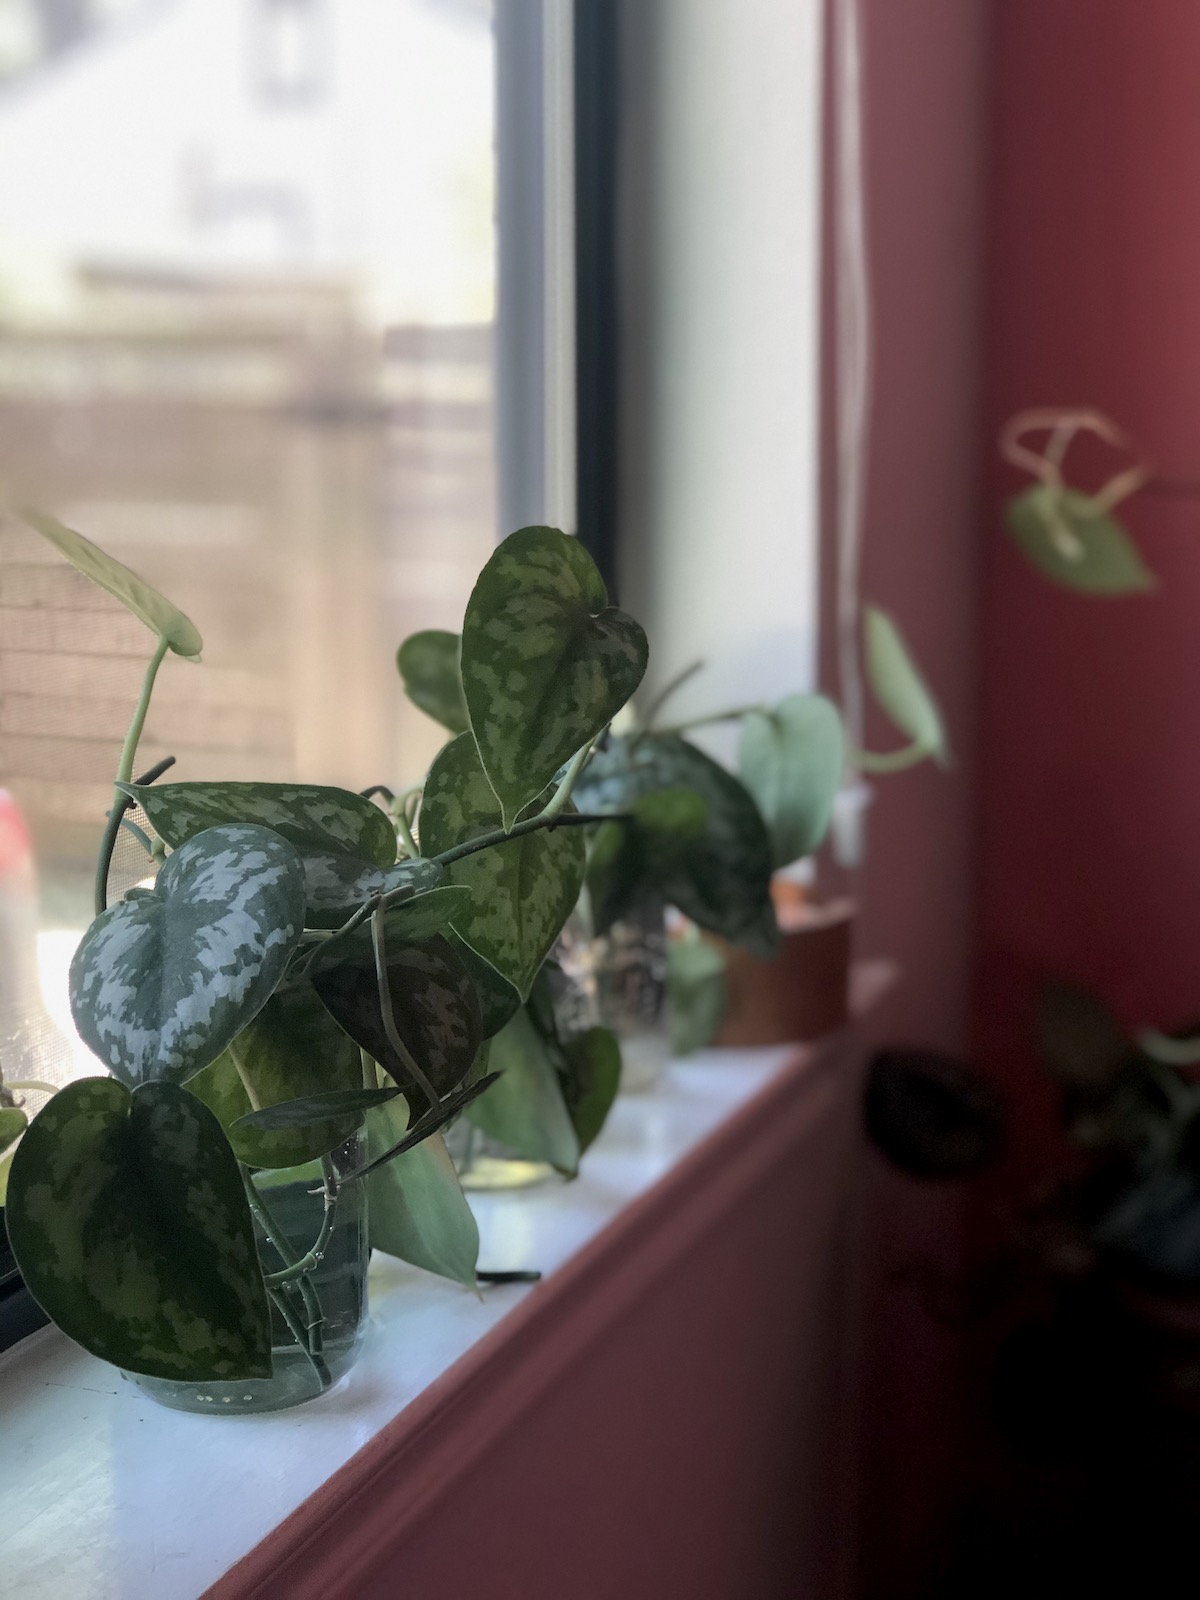 plant-propagation-leaf-cutting-jars-window-display